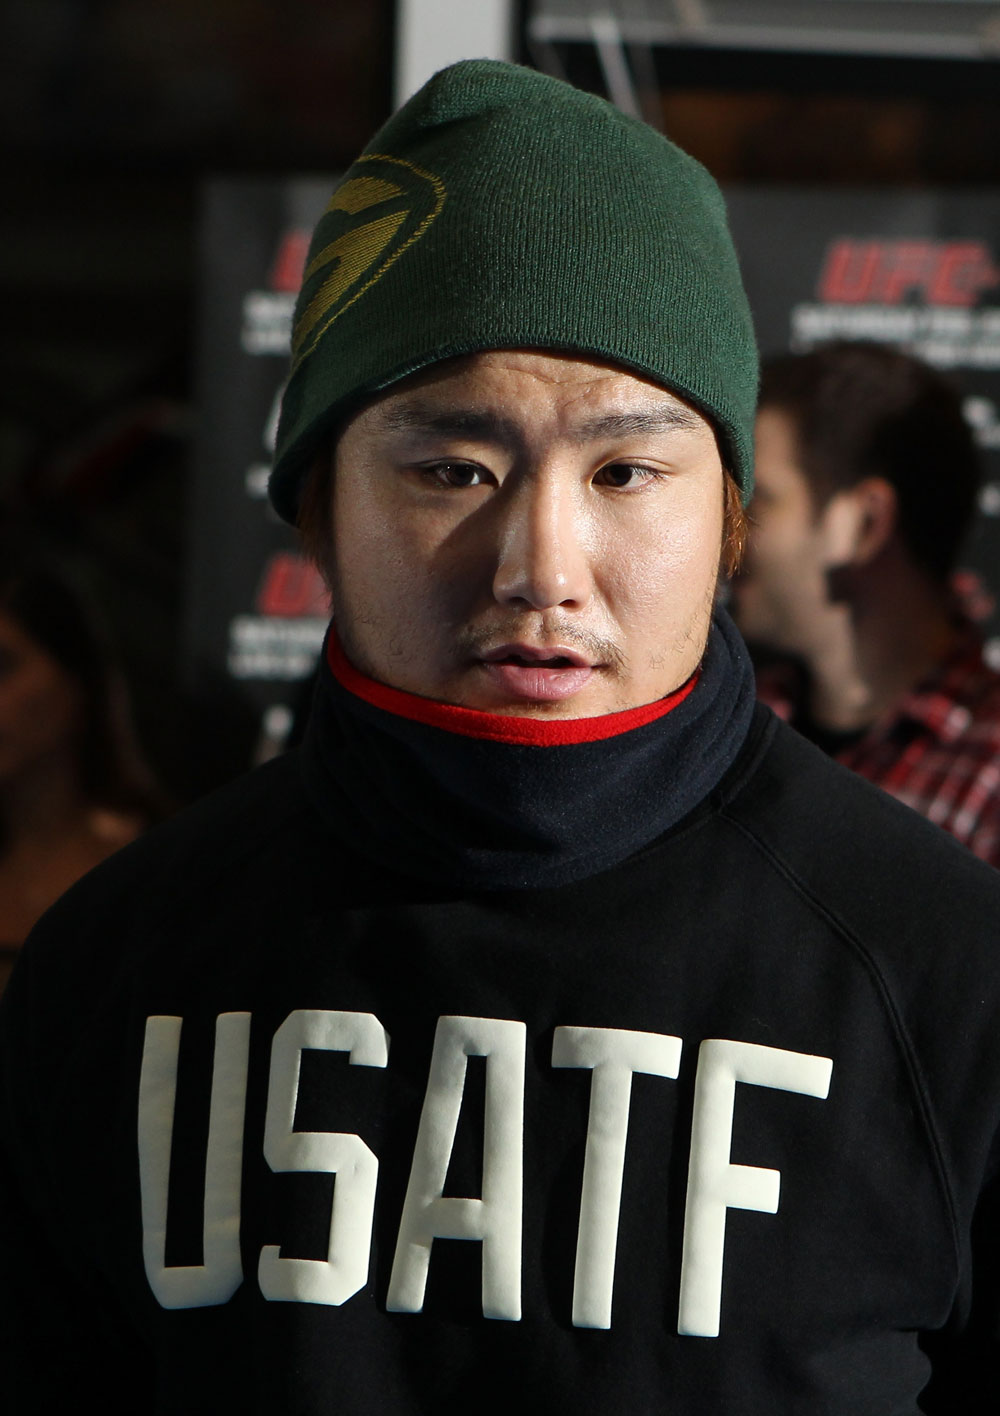 TOKYO, JAPAN - FEBRUARY 22:  Takanori Gomi works out for the media during the UFC 144 open workouts at Gold's Gym on February 22, 2012 in Tokyo, Japan.  (Photo by Josh Hedges/Zuffa LLC/Zuffa LLC via Getty Images) *** Local Caption *** Takanori Gomi